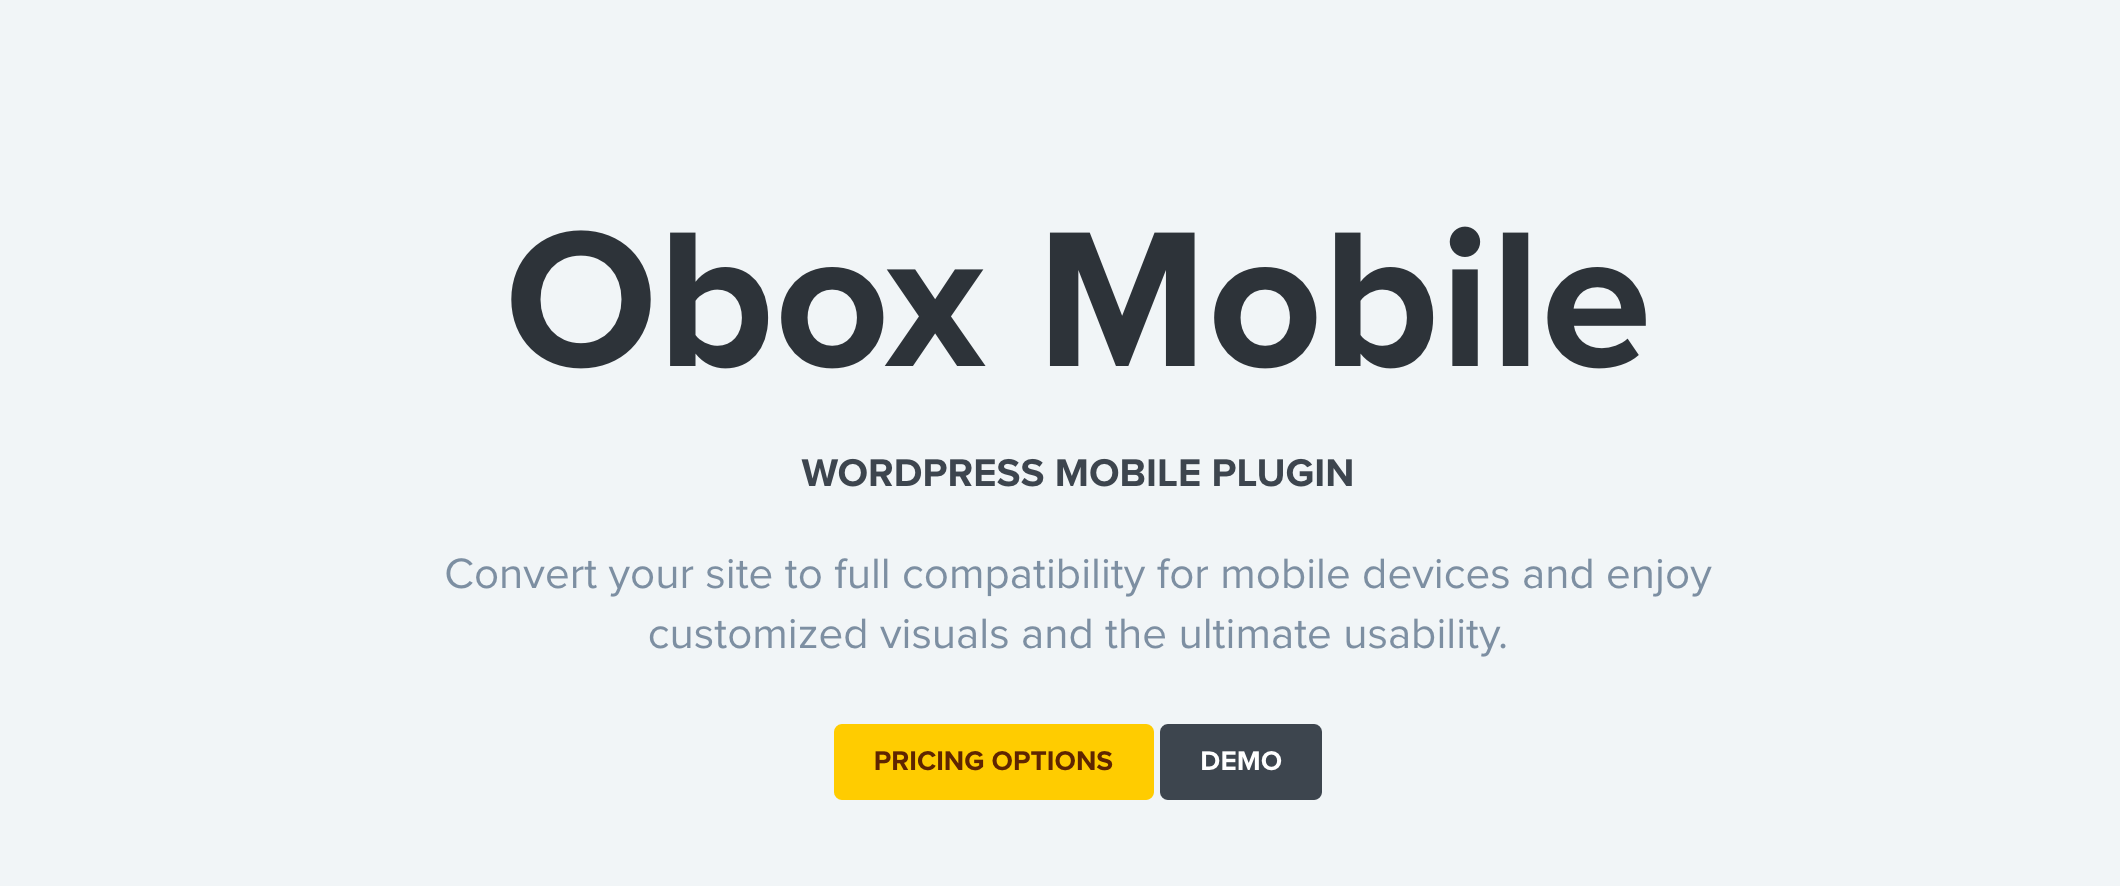 obox-mobile-themes-plugin